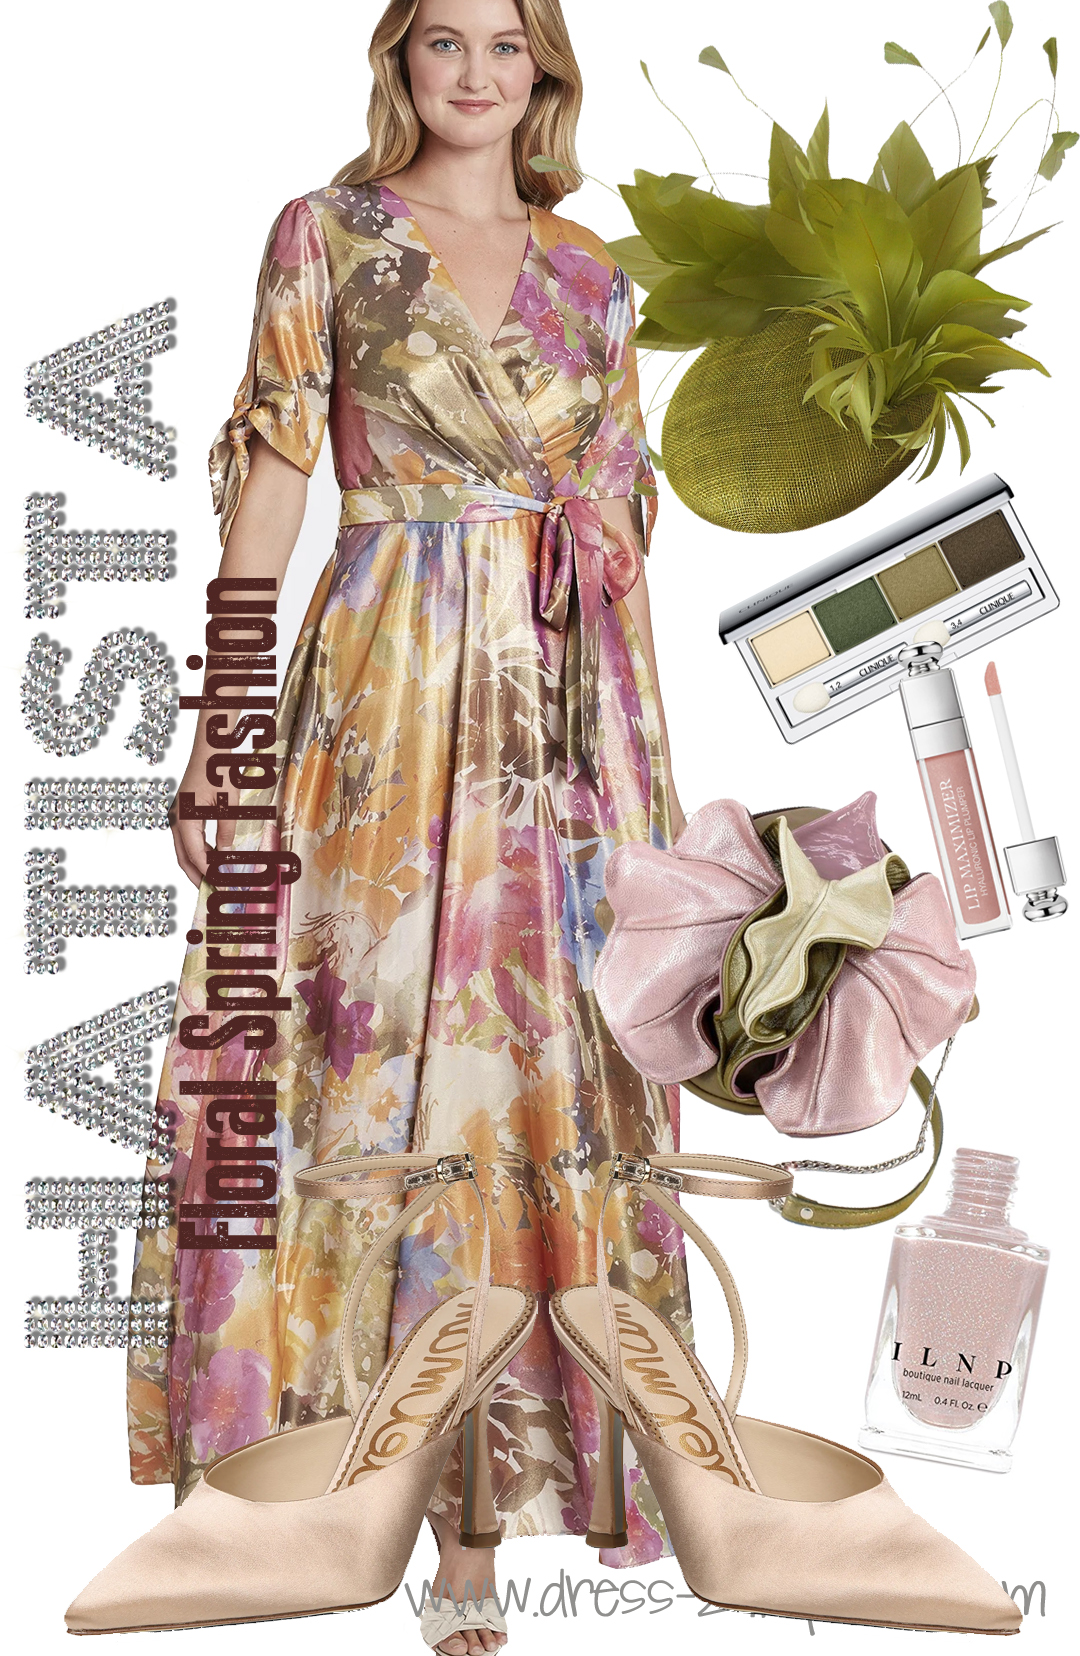 How to Wear Pastels. Floral Kentucky Derby Outfits. What to wear for the Kentucky Derby. What to wear to the Races. What to wear for a Spring Wedding. Royal Ascot Outfit Ideas. What to wear to a Sumnmer Wedding. Summer Mother of the Bride Outfits.